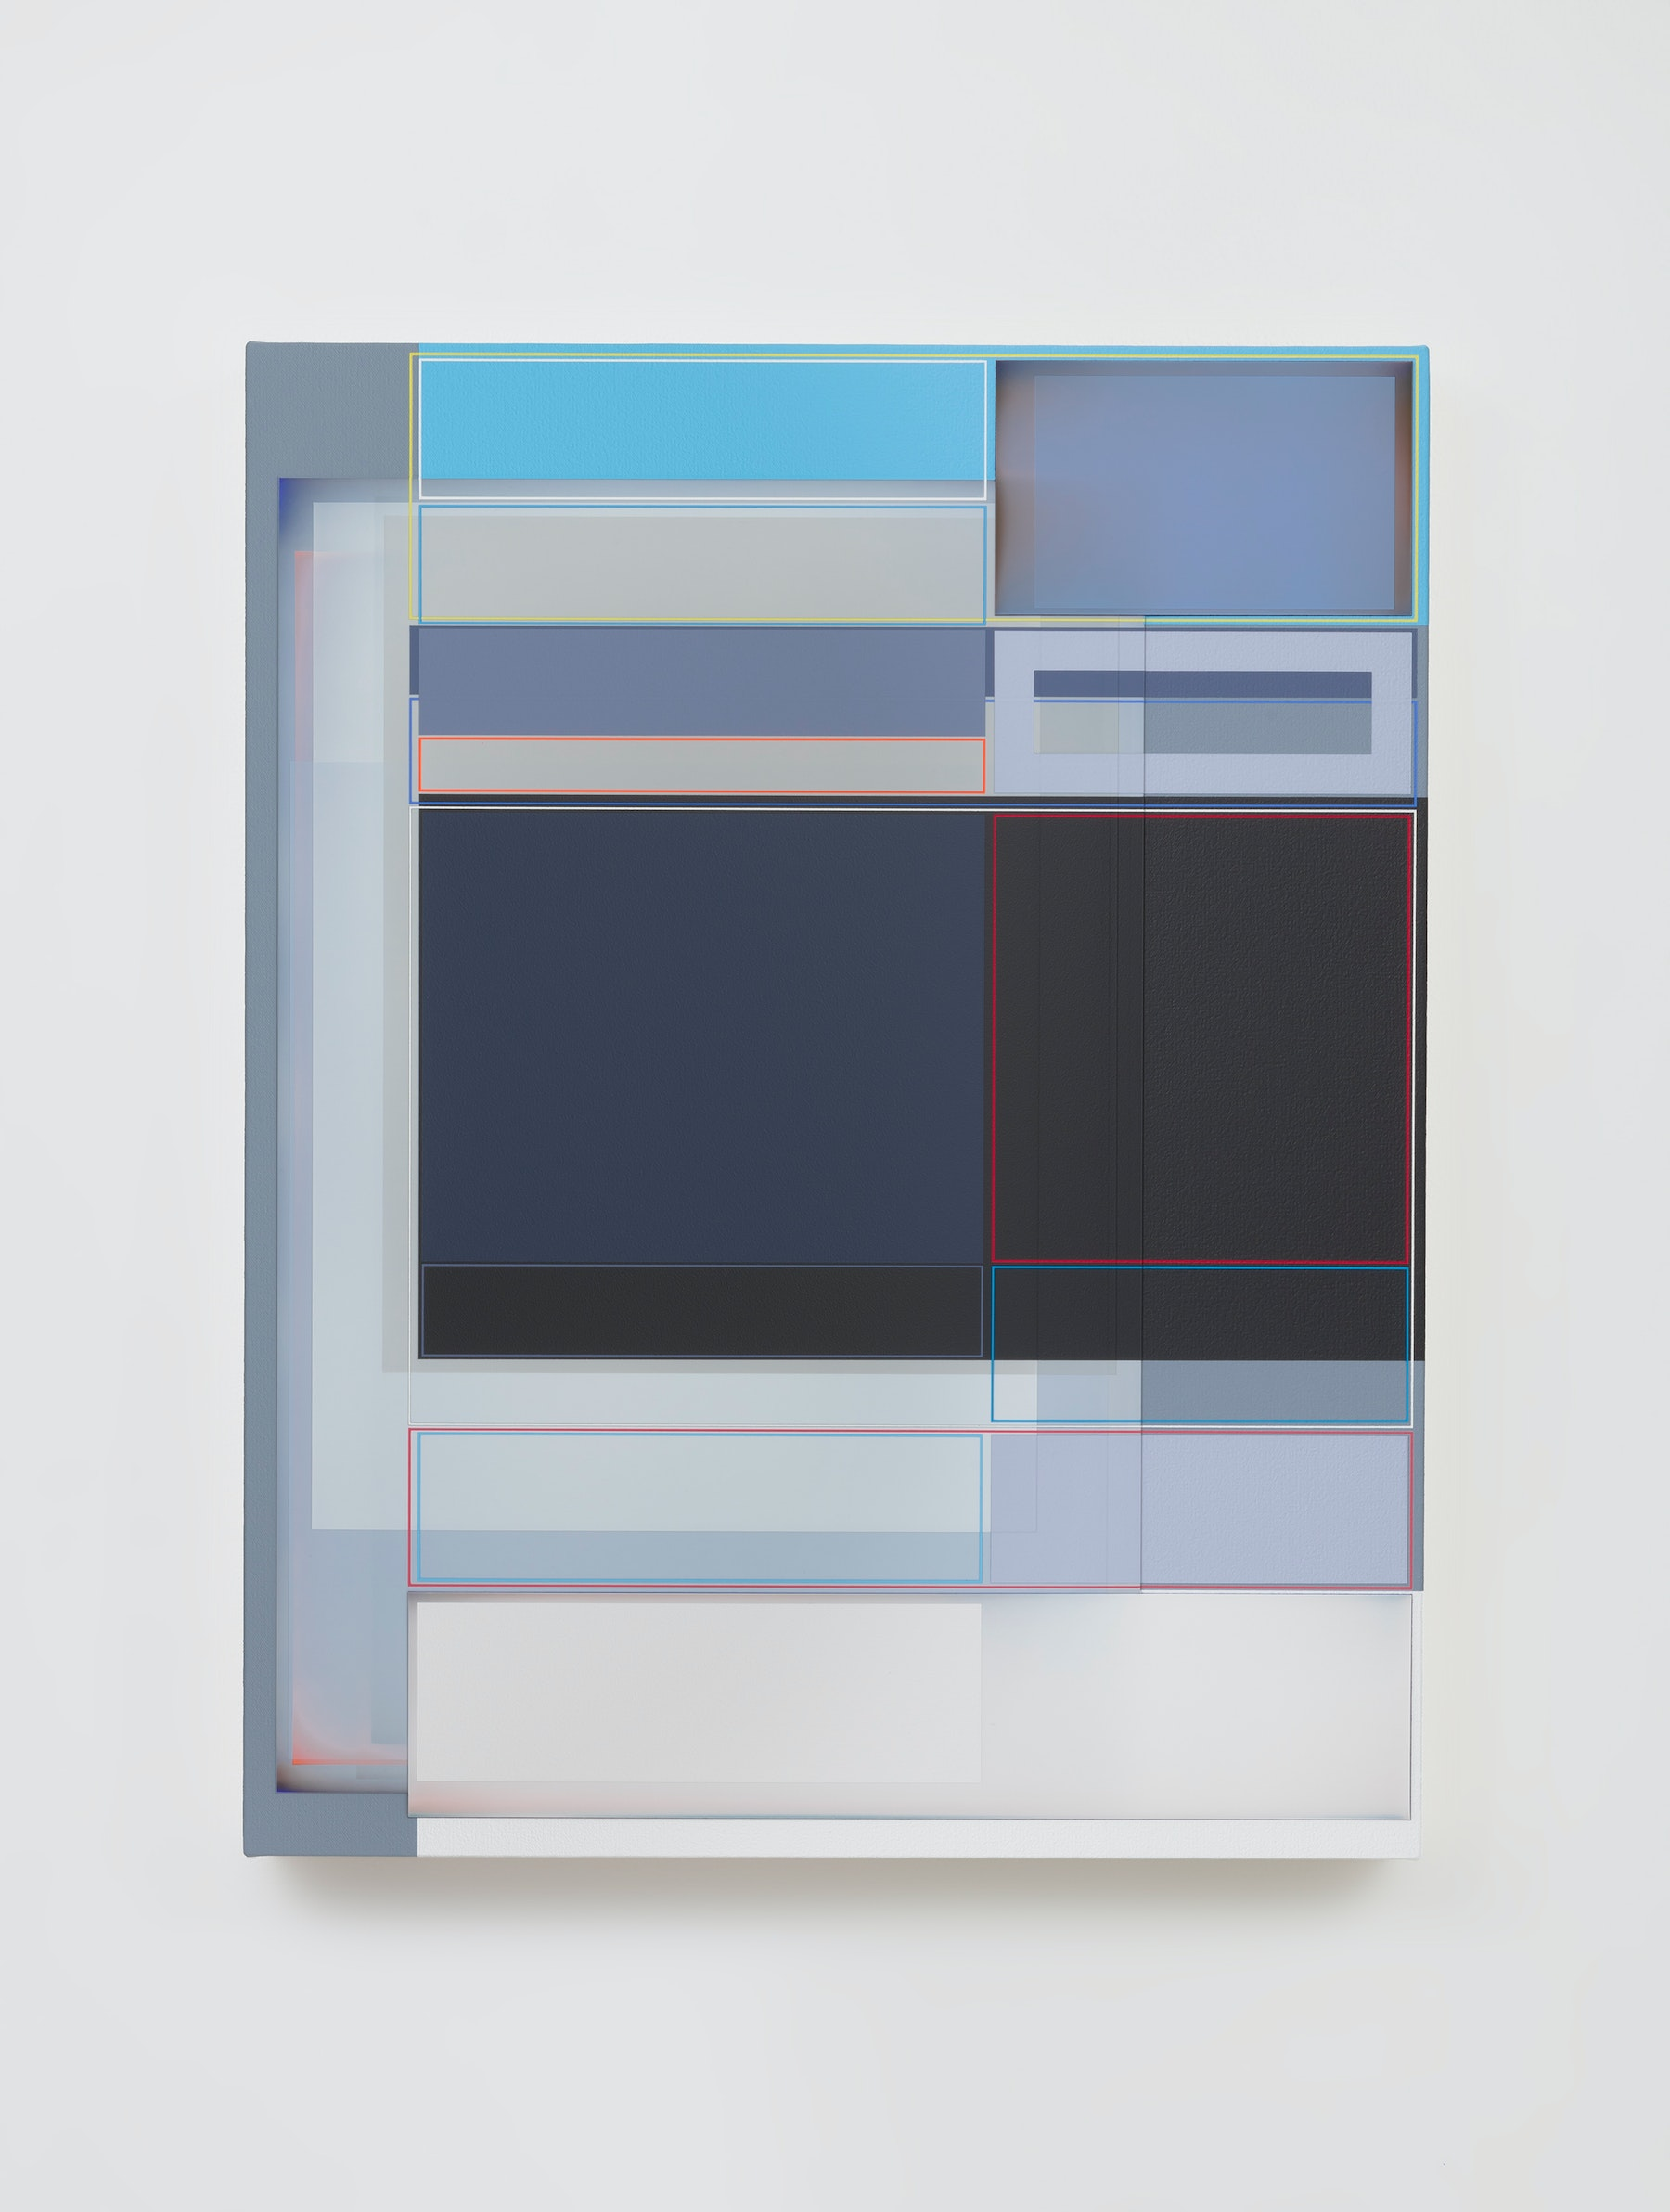 """Patrick Wilson """"Disrupted Grid (Democracy),"""" 2021 Acrylic on canvas 27"""" x 21"""" [HxW] (68.58 x 53.34 cm) Inventory #WIL592 Courtesy of the artist and Vielmetter Los Angeles Photo credit: Robert Wedemeyer"""